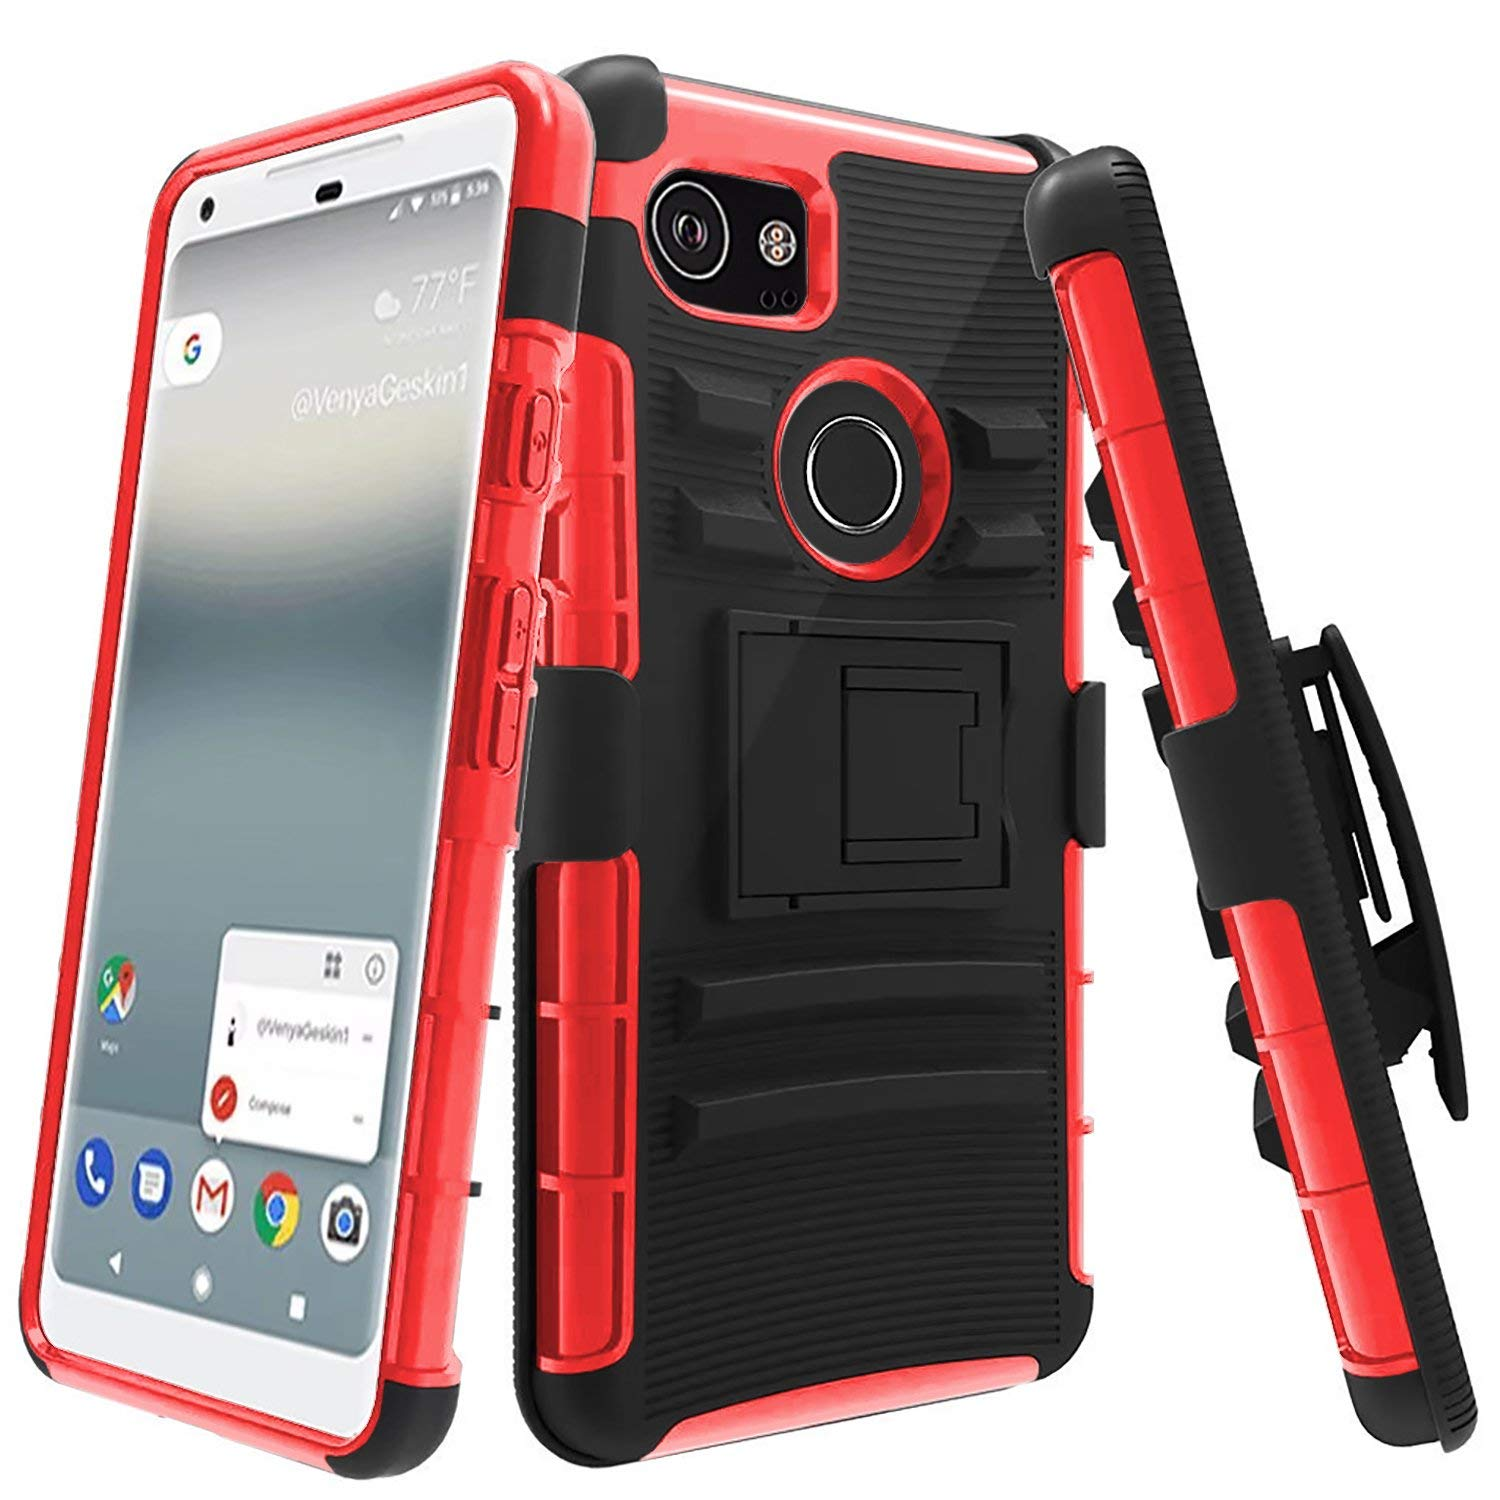 dd1dcb78df Get Quotations · Google Pixel 2 XL Case,SUNGUY Choise Hybrid Kickstand  Heavy Duty Armor Holster Defender Protective